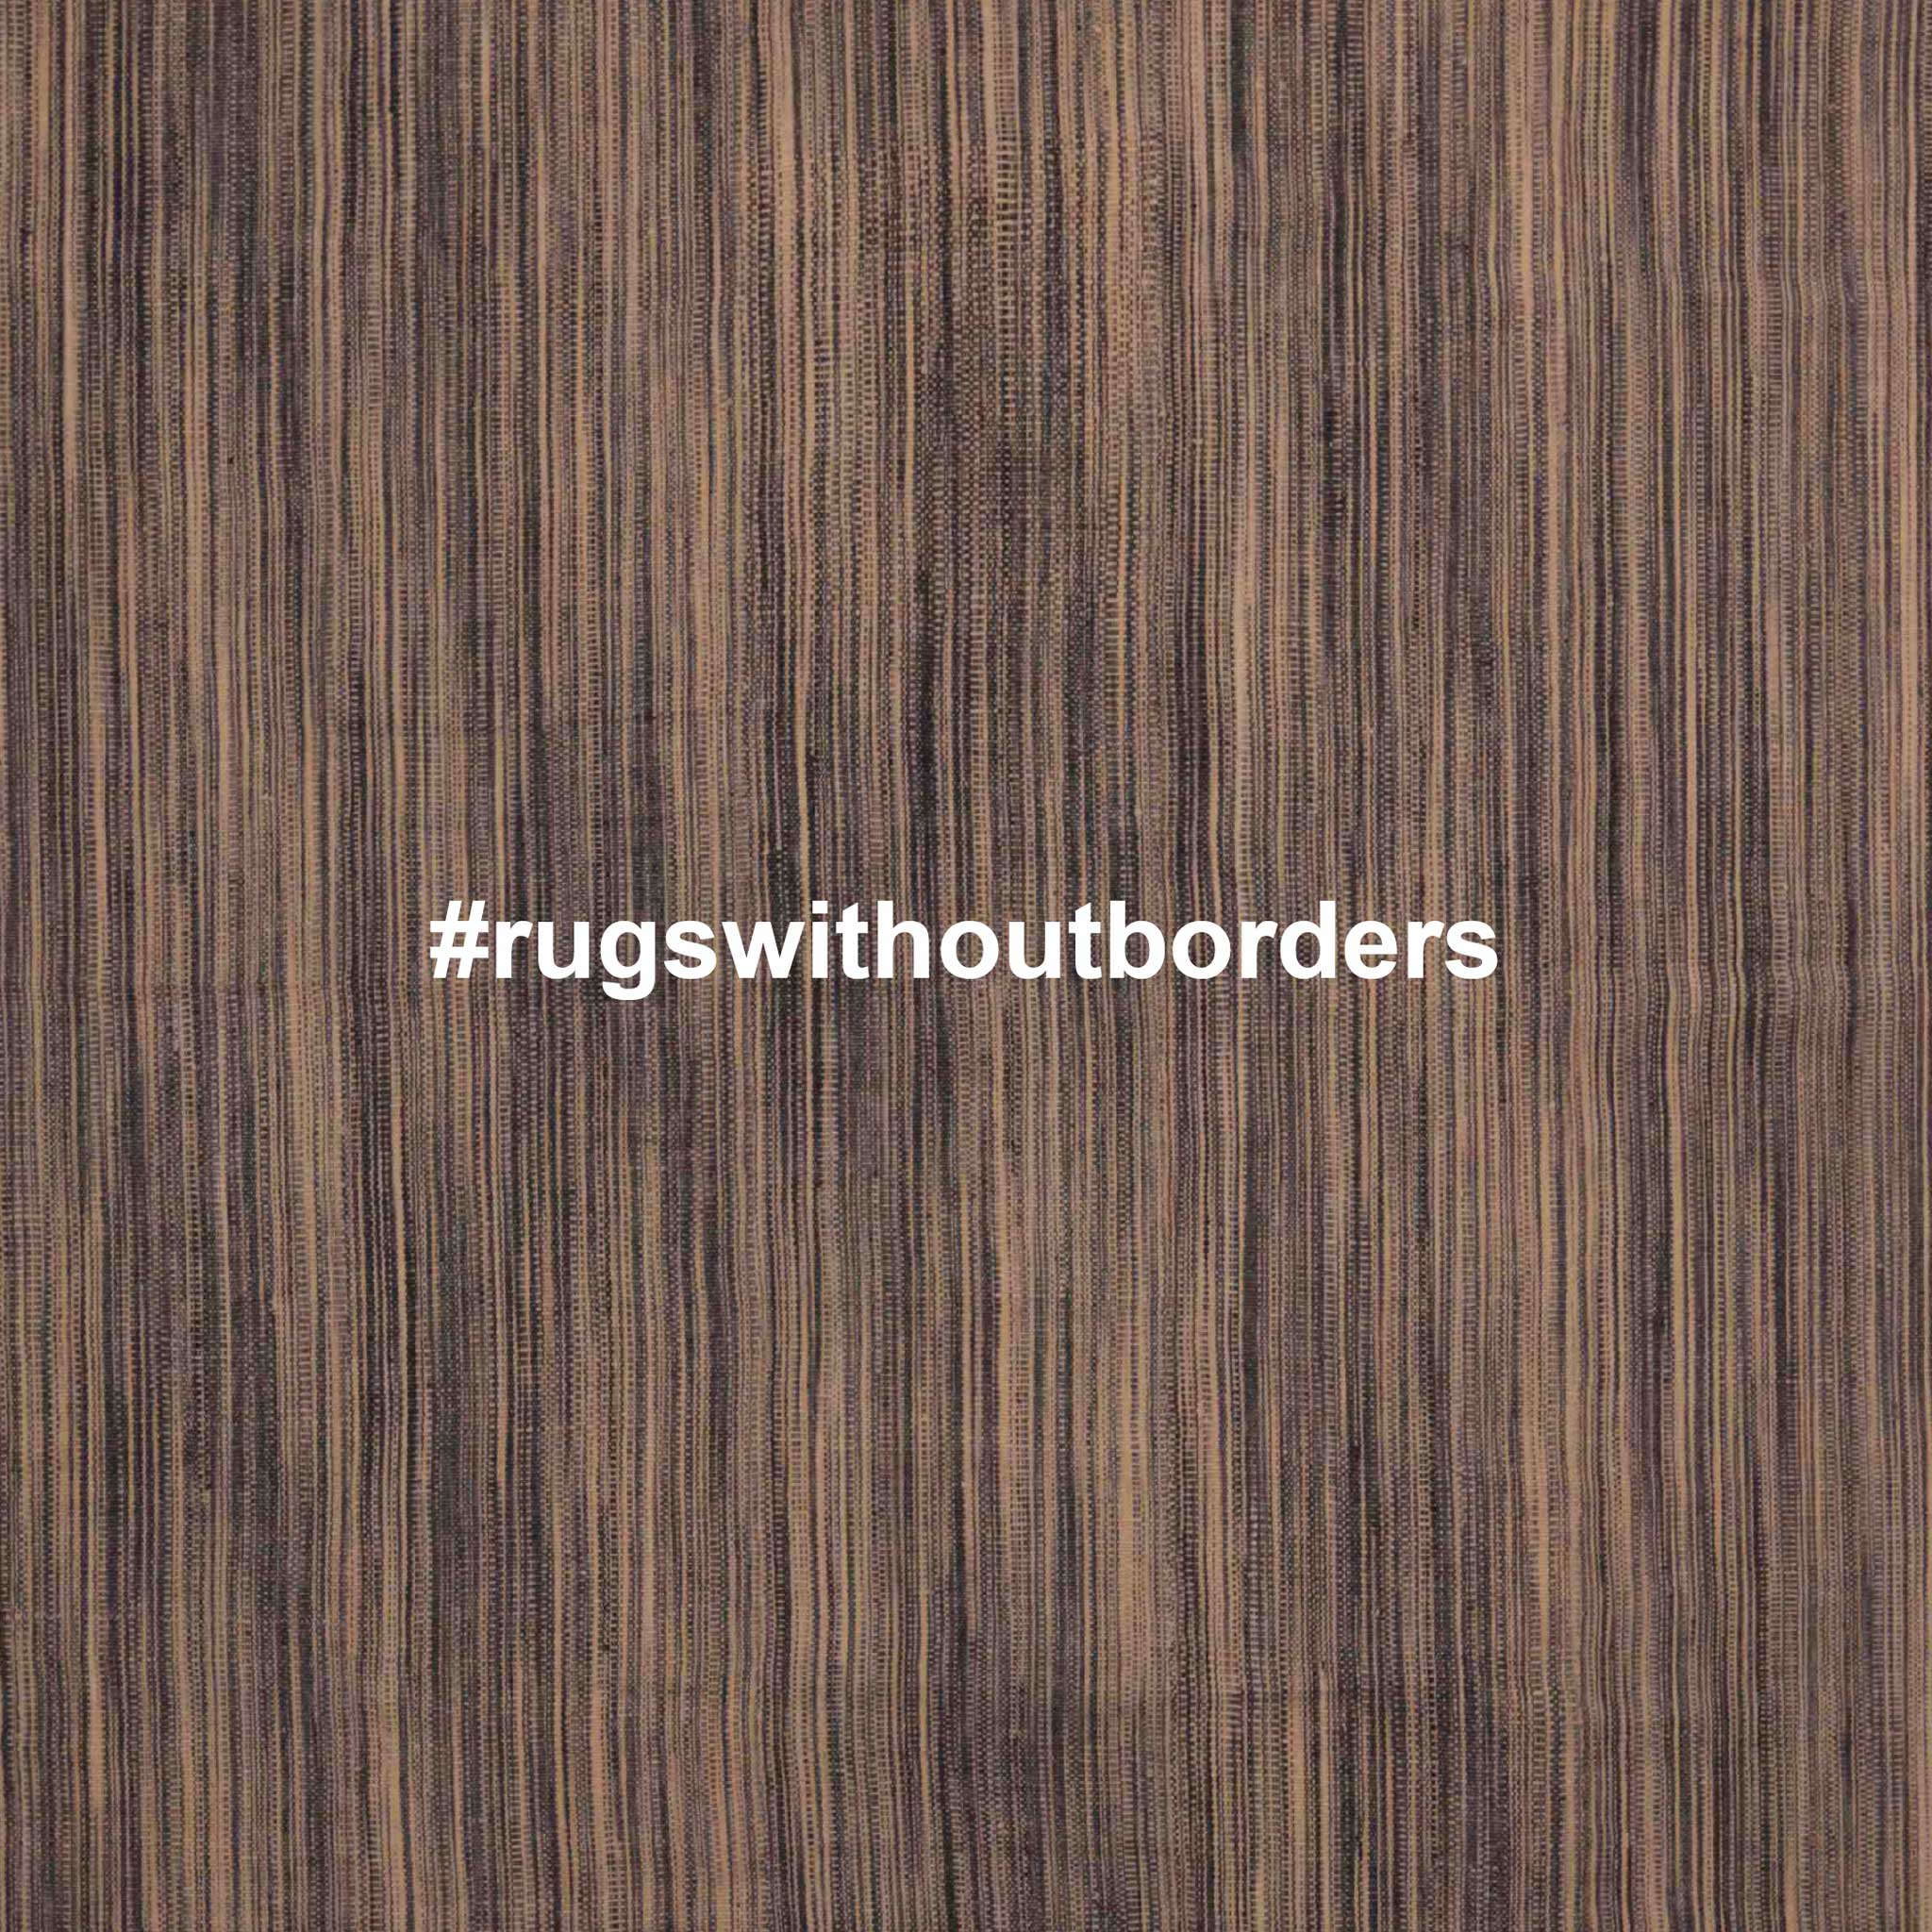 #rugswithoutborders - A social media campaign to raise awareness of the interconnected nature of our world. | Rug image: Edelgrund's Massal Collection. Image courtesy of Edelgrund.